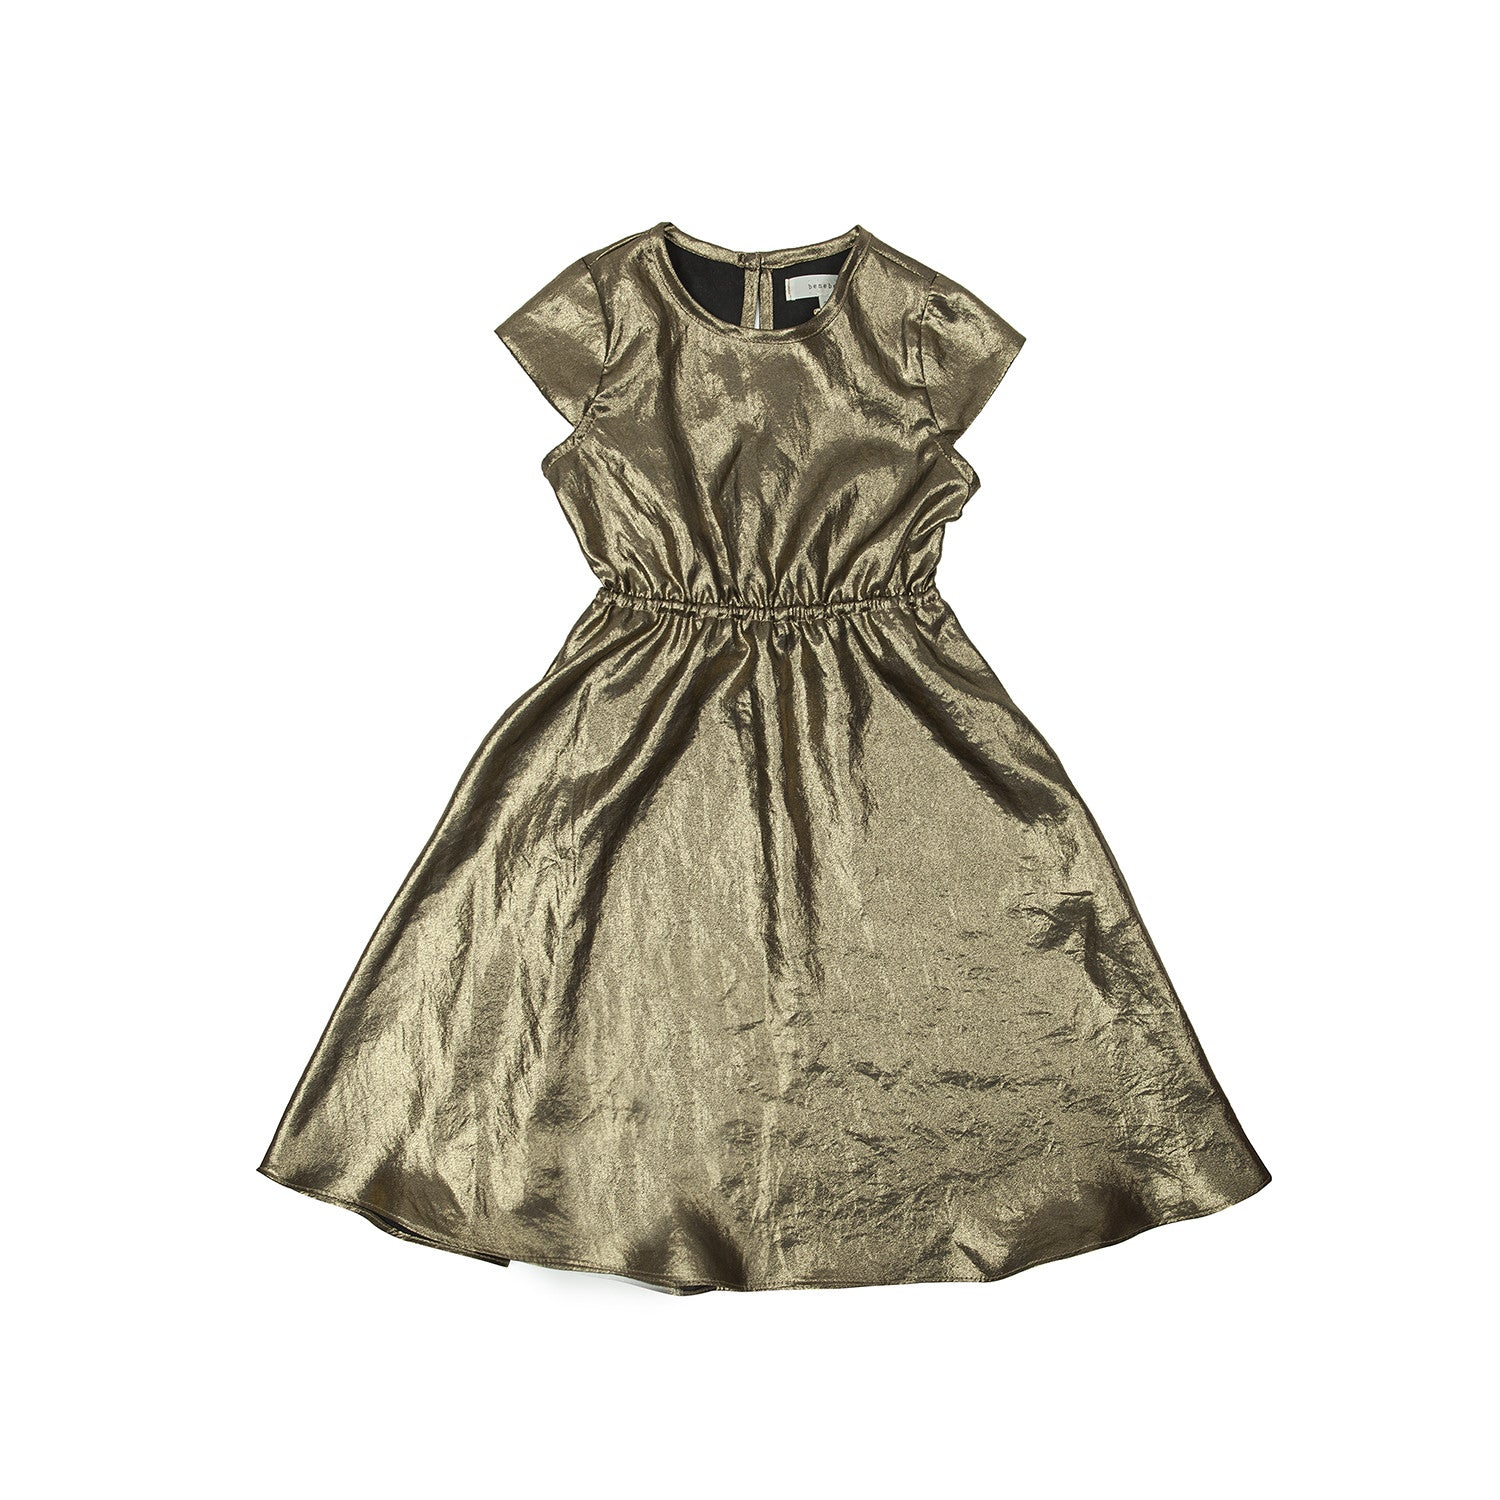 Bene Bene Gold Pearl Dress - Ladida